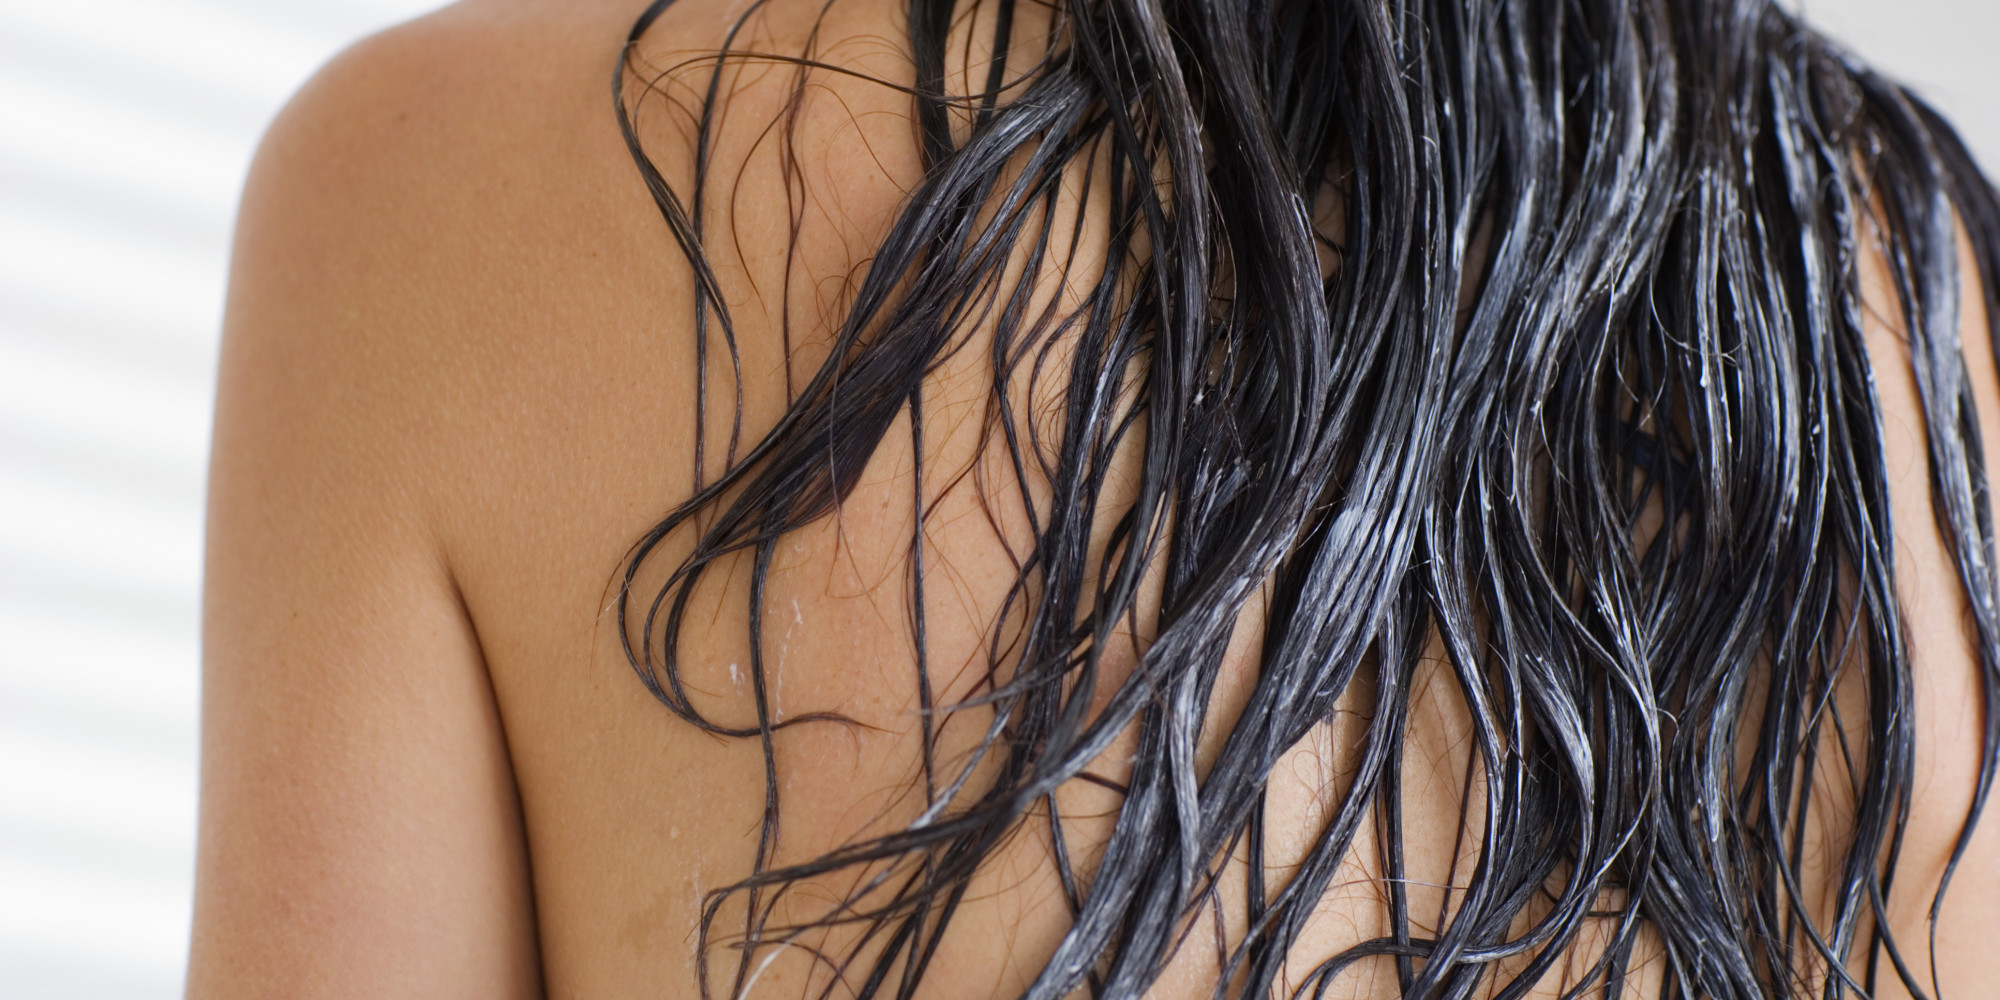 Handle wet hair with care